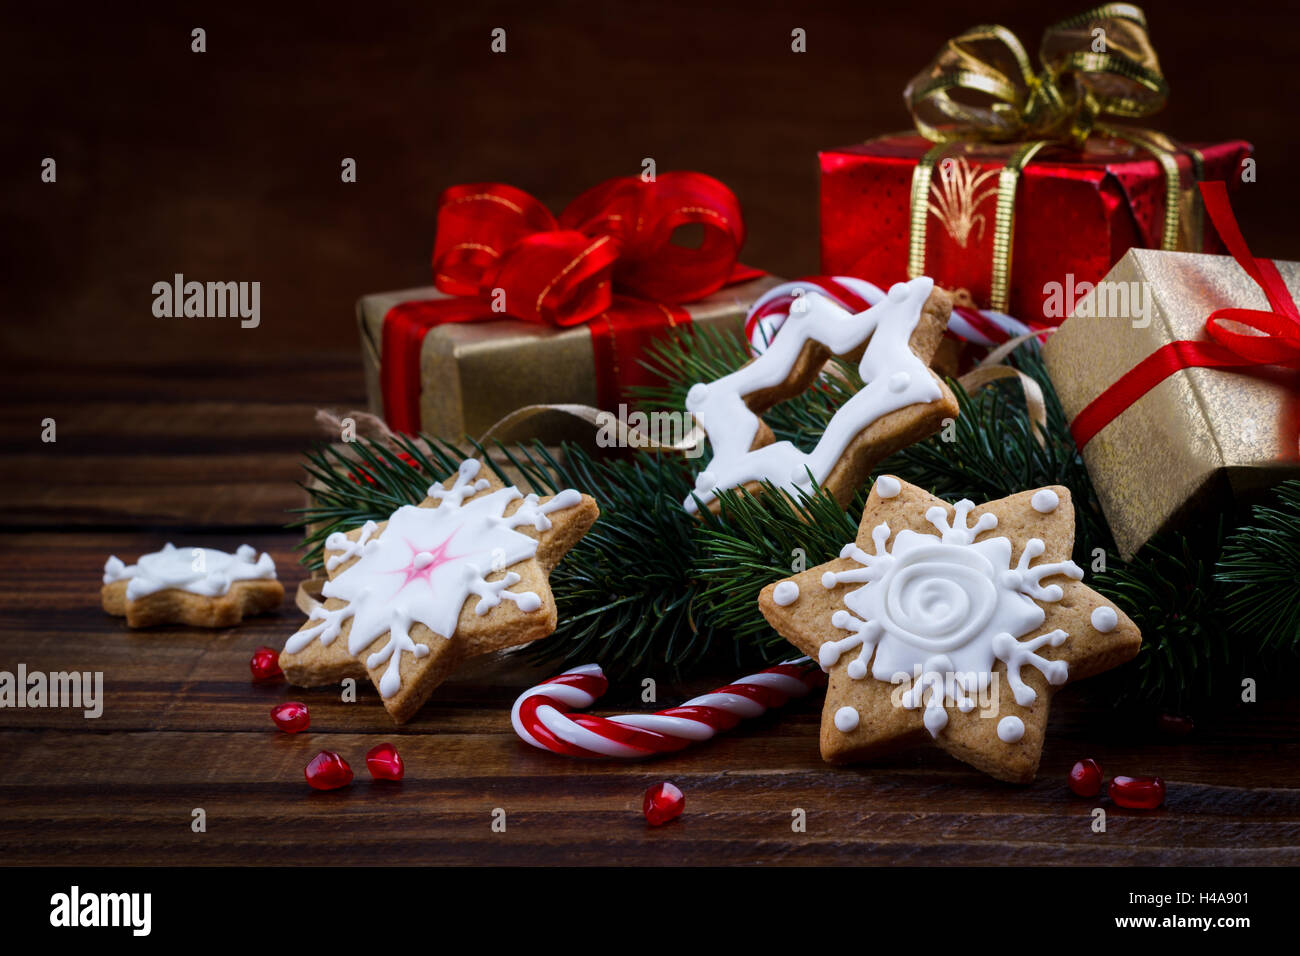 Christmas decoration composition with cookies gift box and pomegranate seeds - Stock Image